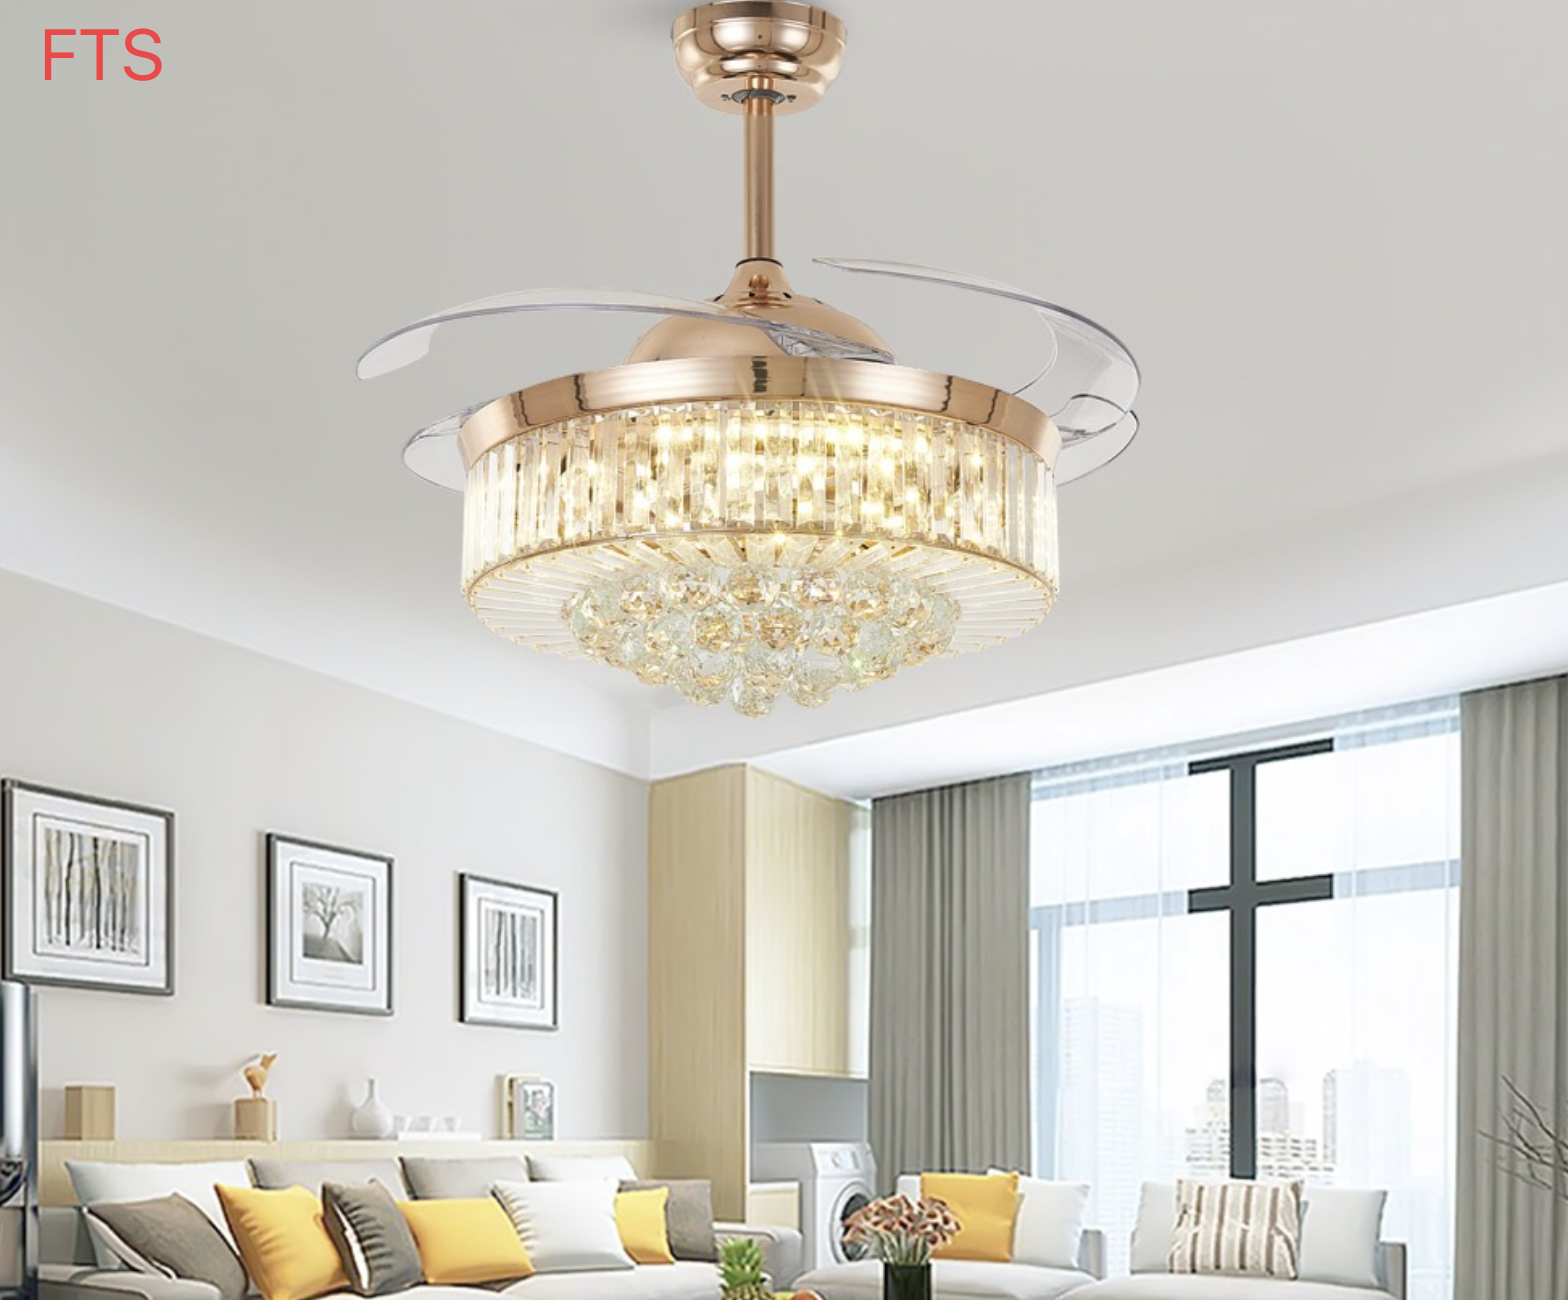 Crystal Fan Lamp Light Luxury Living Room Dining Room Bedroom Simple Ceiling Fan Lamp Modern High-end Invisible Fan Lamp Beautiful In Colour